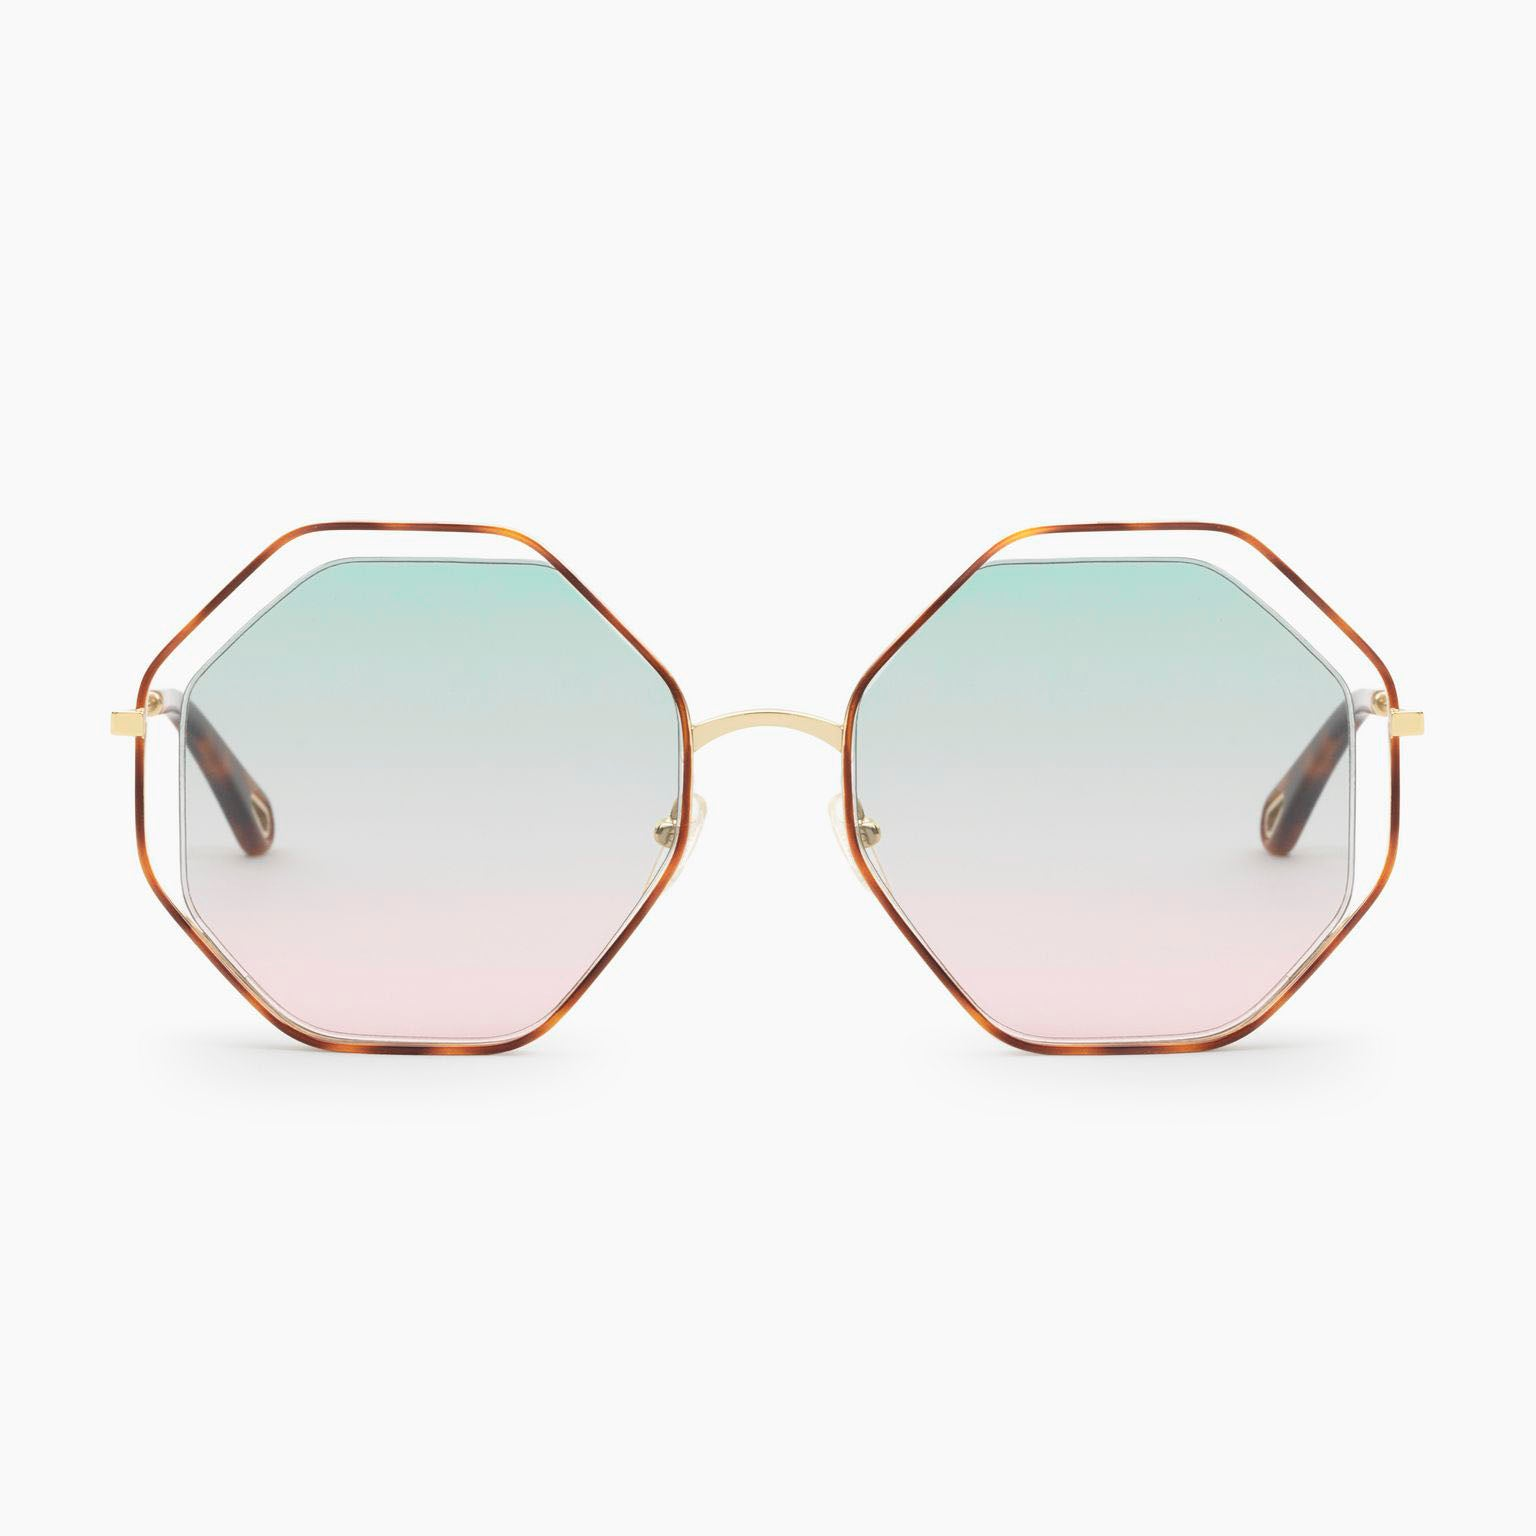 Chloé Poppy Sunglasses